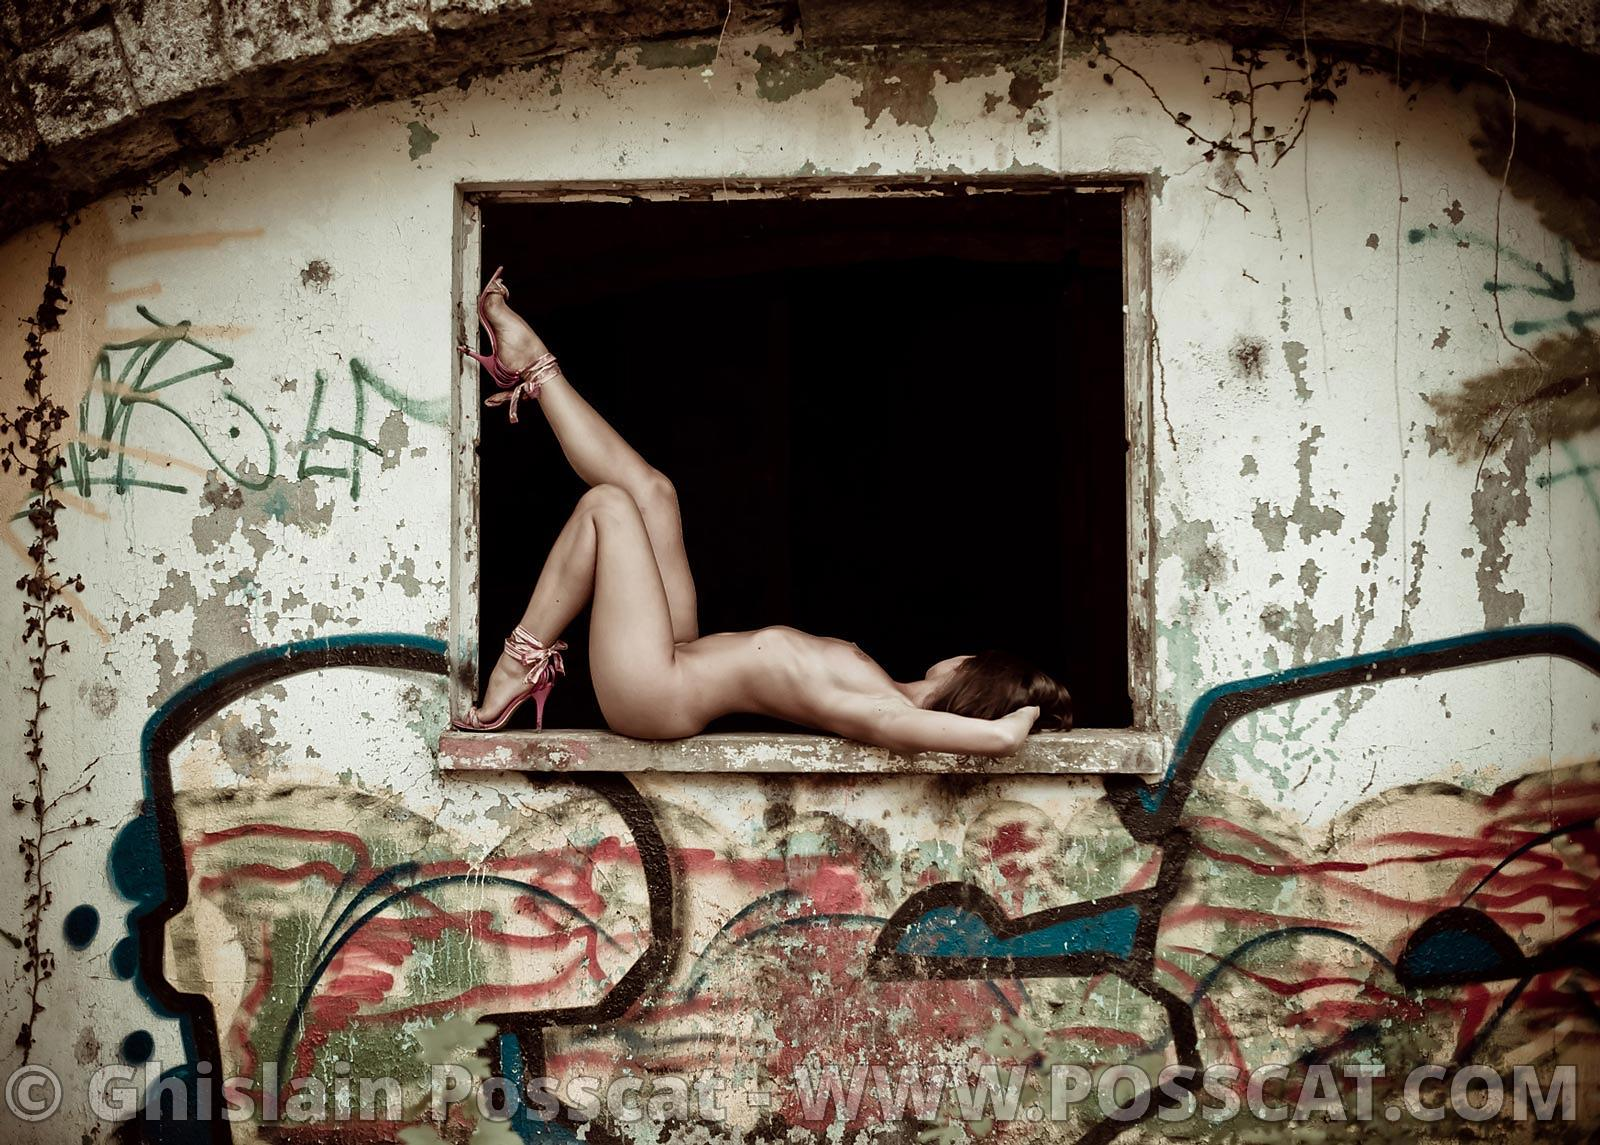 Nude picture: öppning - Ghislain posscat, erotic pictures, nude fine art, erotic photographer